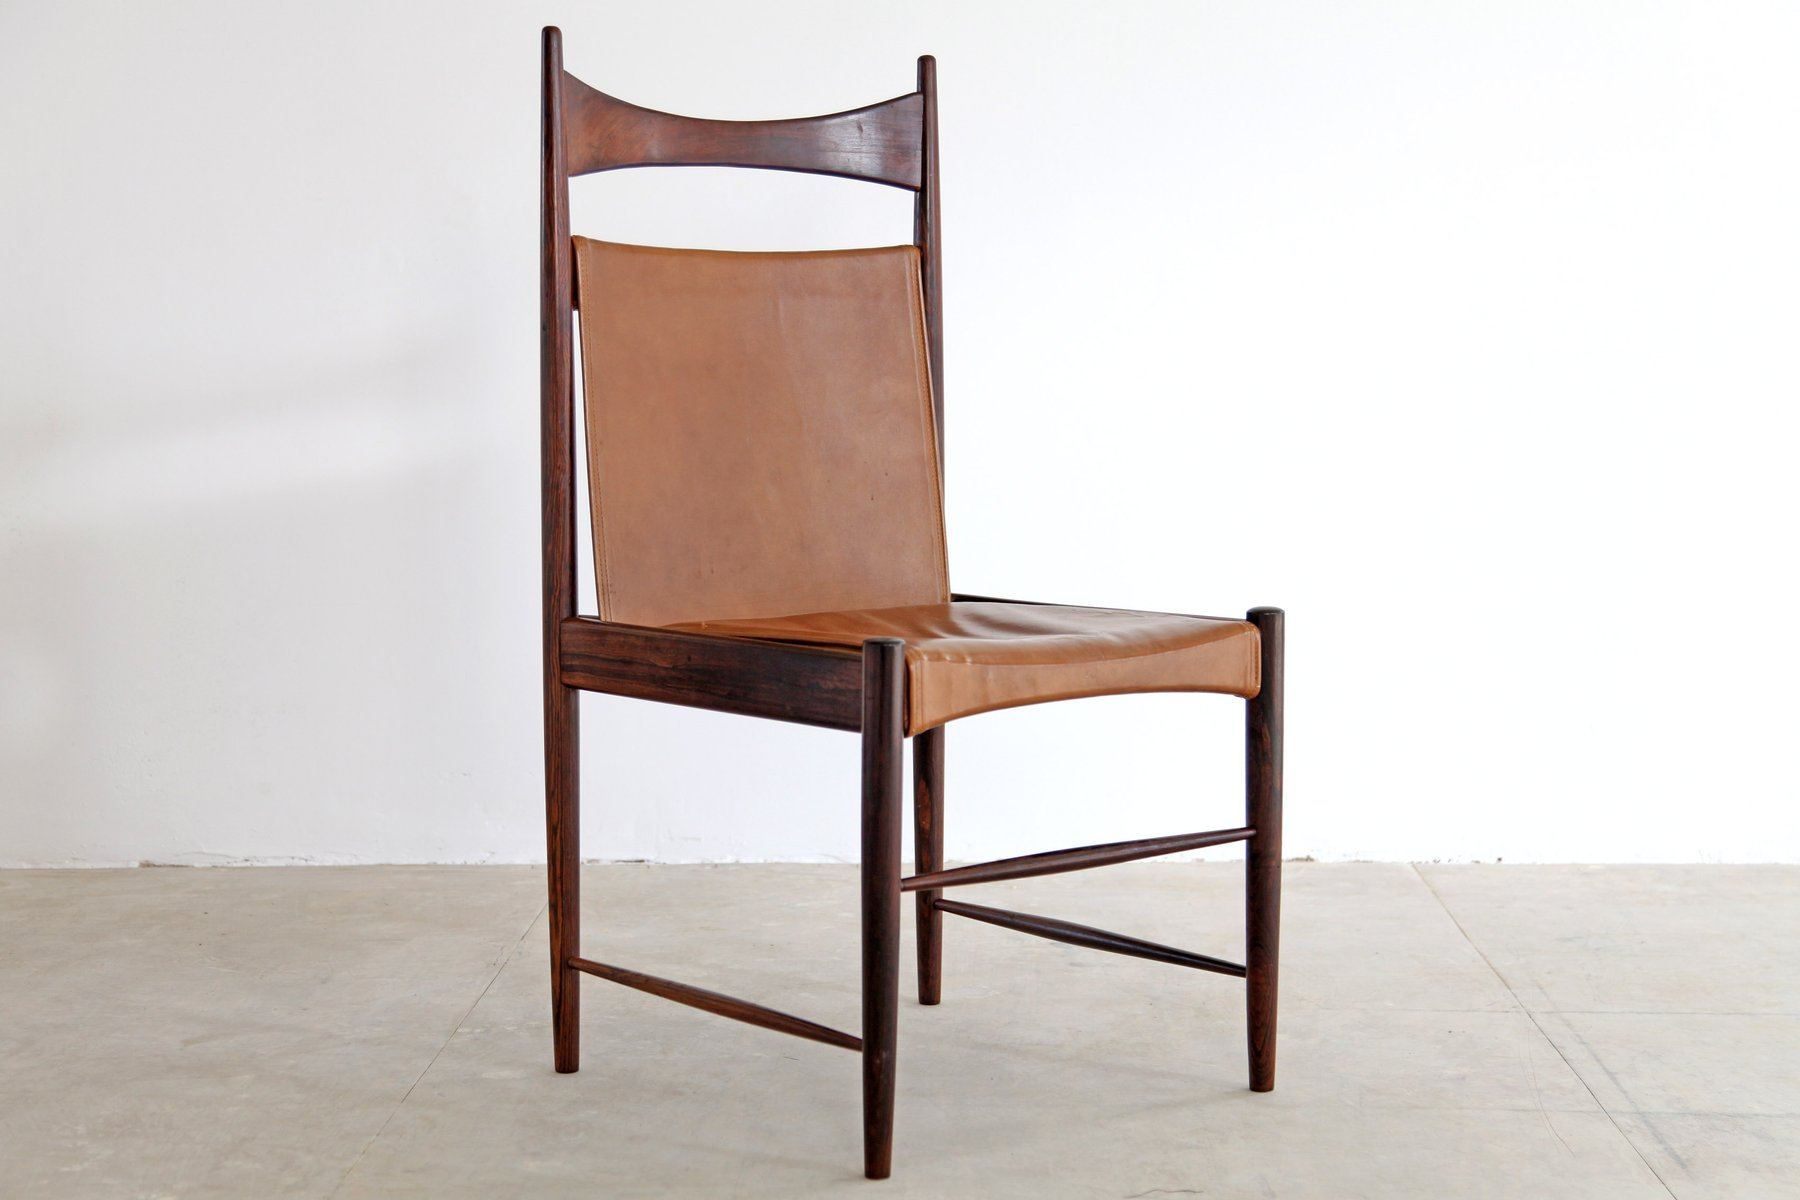 Superieur Brazilian Cantu Chairs By Sergio Rodrigues, 1950s, Set Of 8